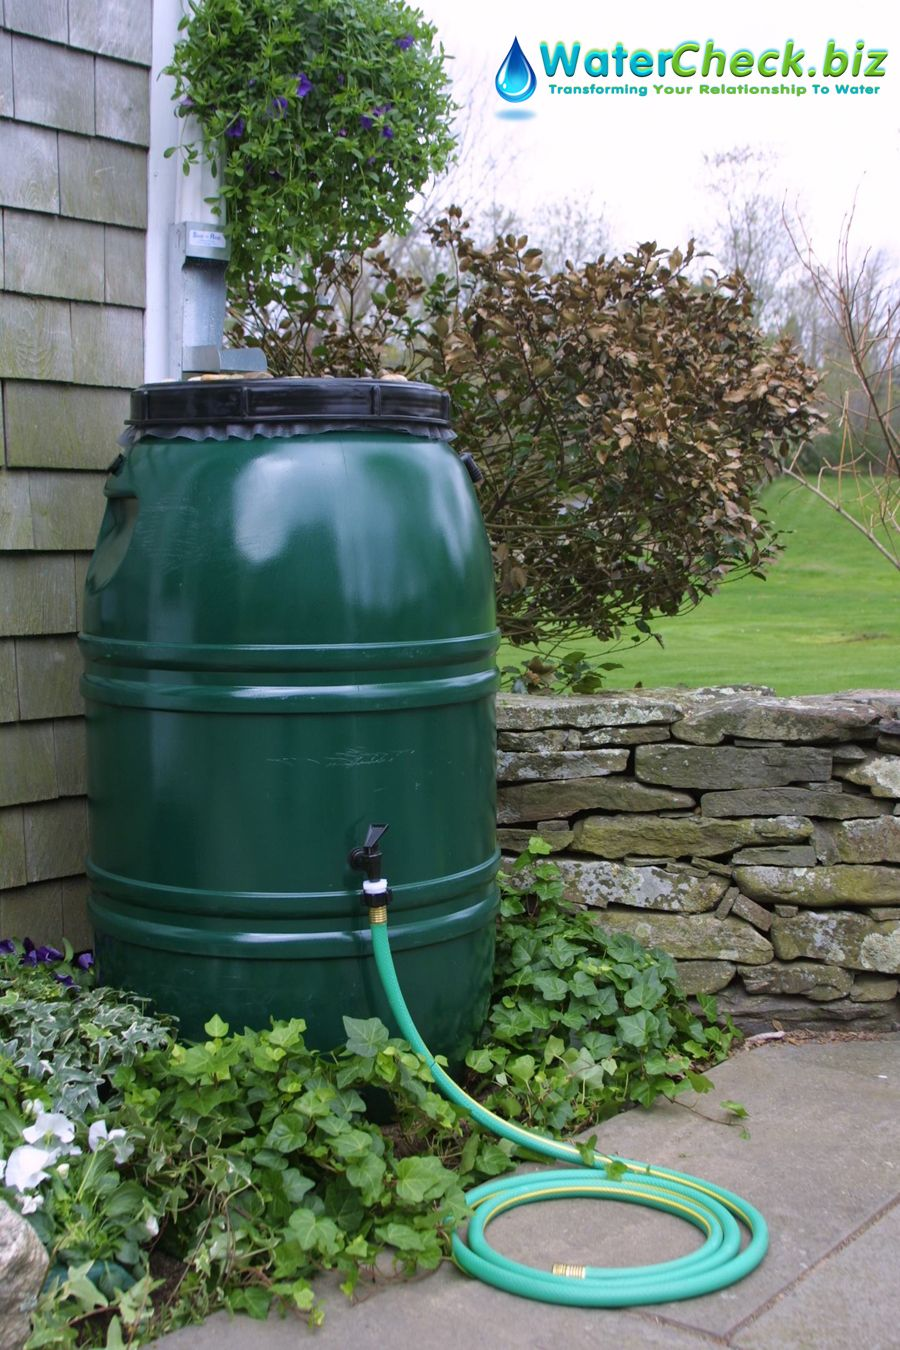 Water protection tip: Collecting rainwater in barrels provides access to a free water source that is naturally soft. By harvesting a steady supply of rainwater, you can protect our natural resources. #waterproducts #waterprotection